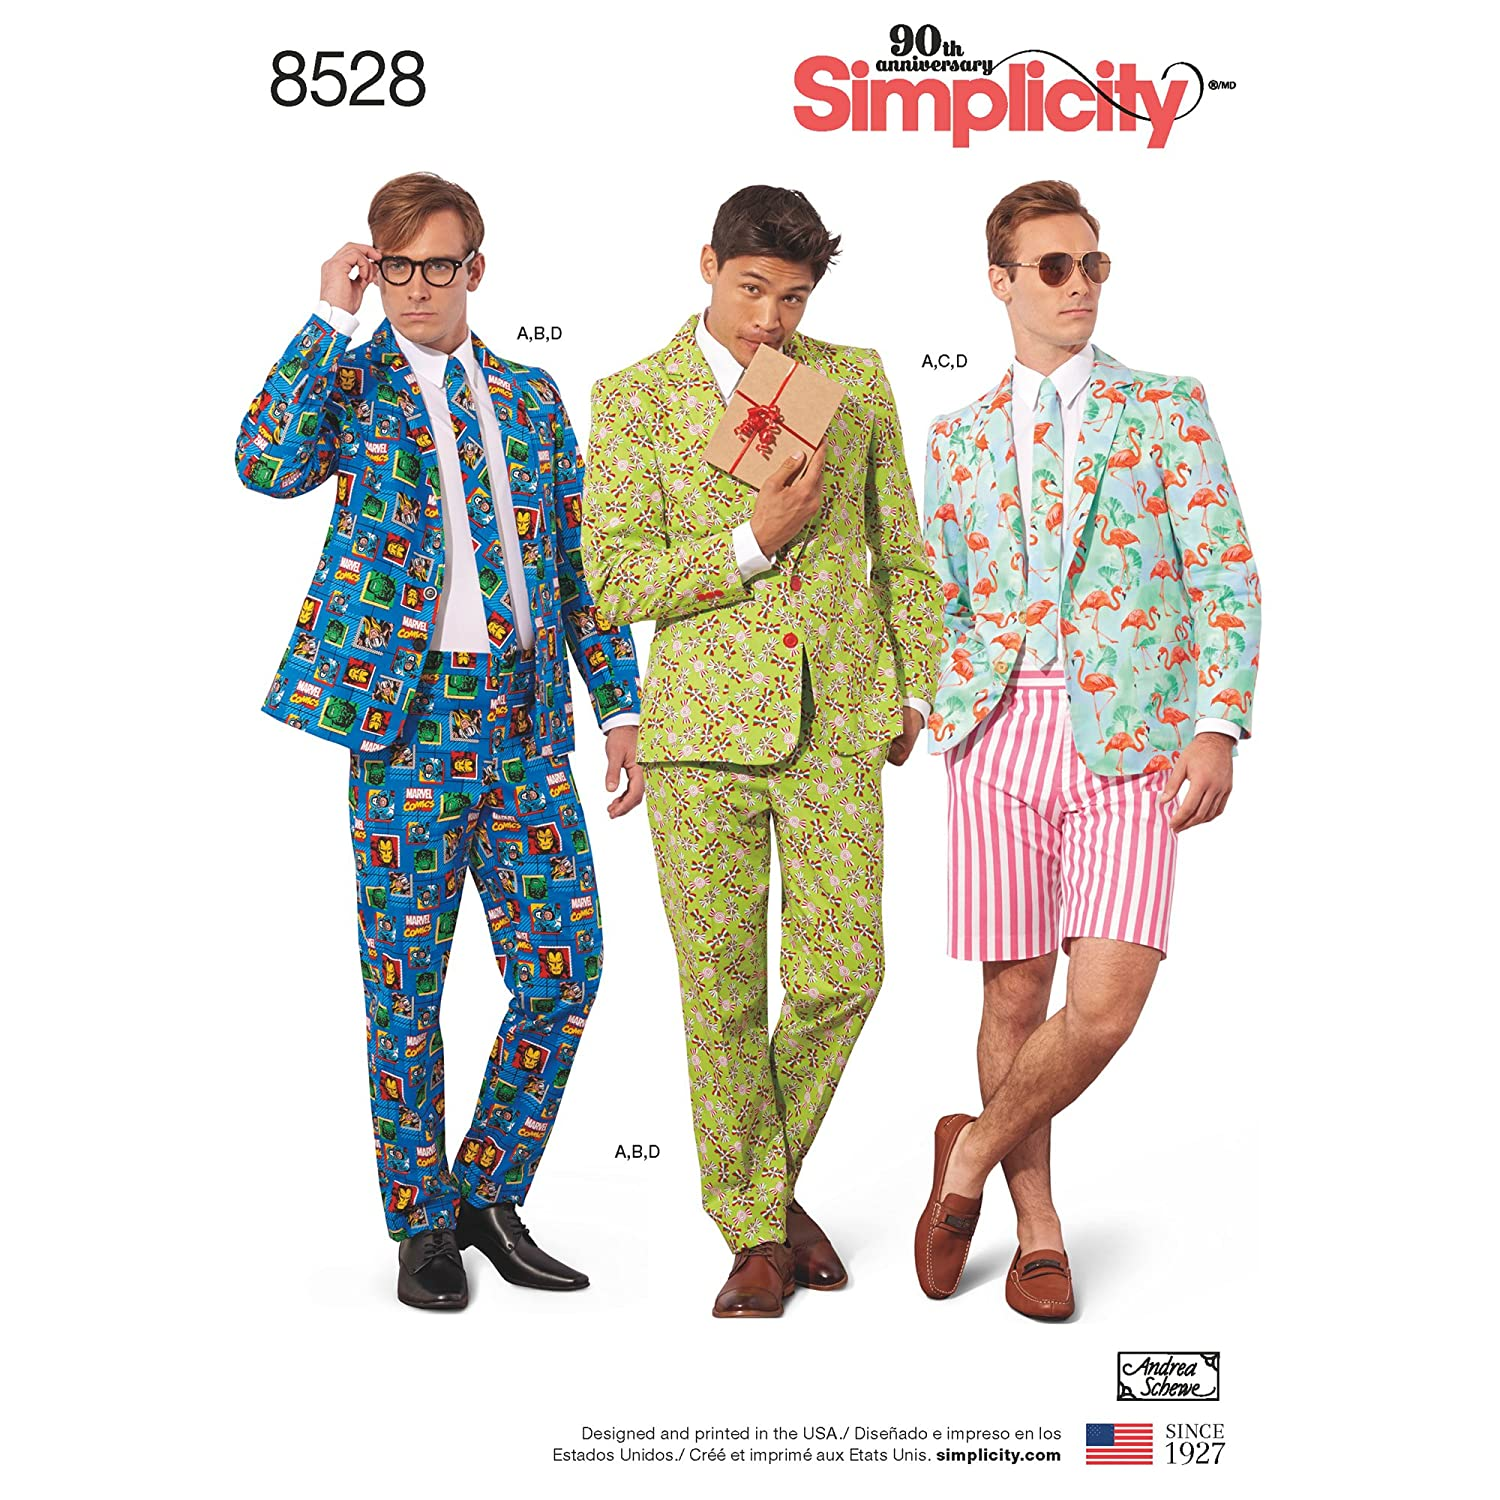 Simplicity 8528 Mens Suit Costume Sewing Pattern Sizes 34-42